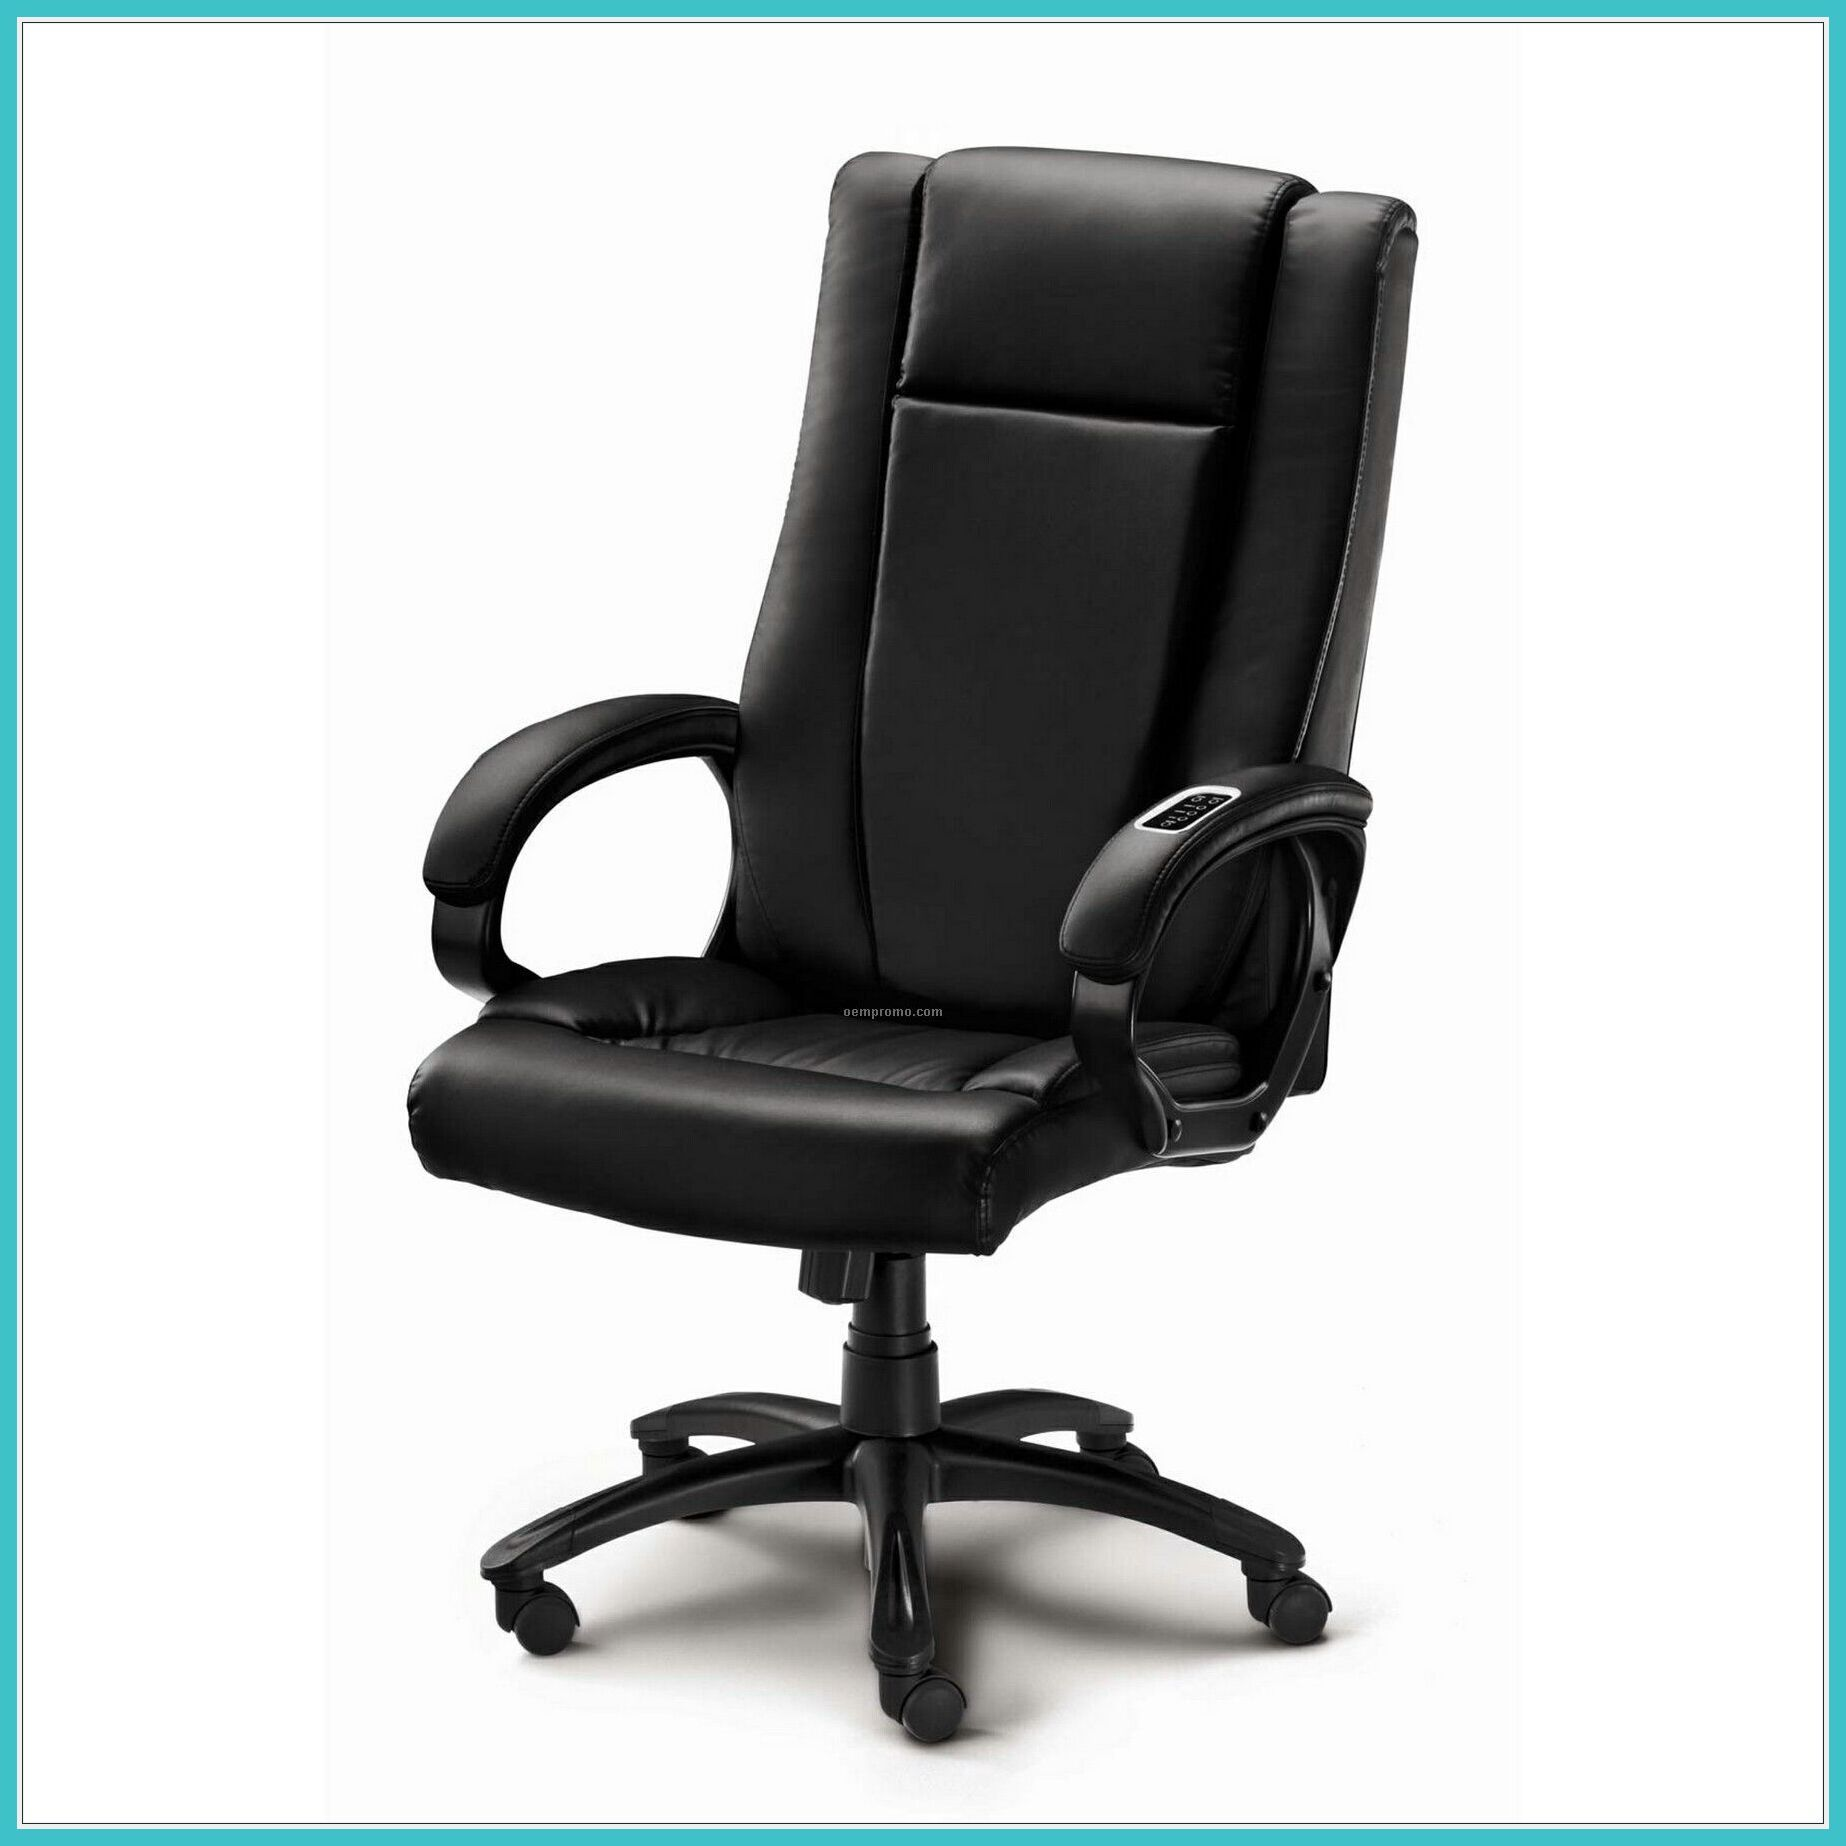 129 Reference Of Massage Chair Costco Canada In 2020 Massage Chair Chair Office Chair